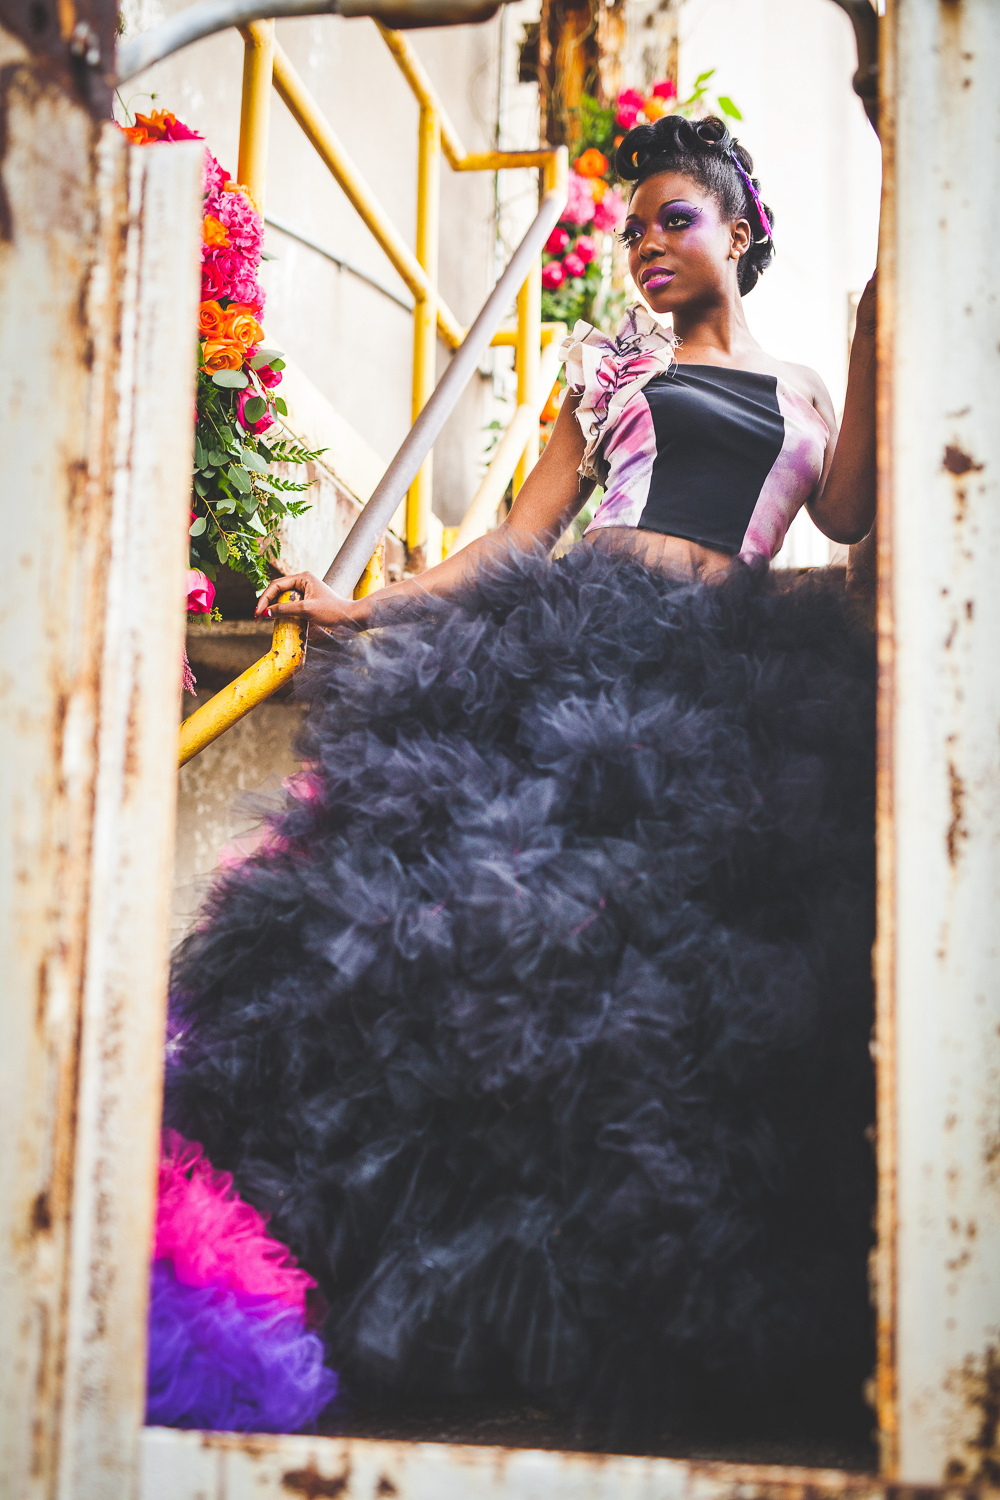 blackbean-photography-miracle-twenty-one-urban-wedding-shoot-urban-gypsy-couture-colourful-wedding-shoot-31